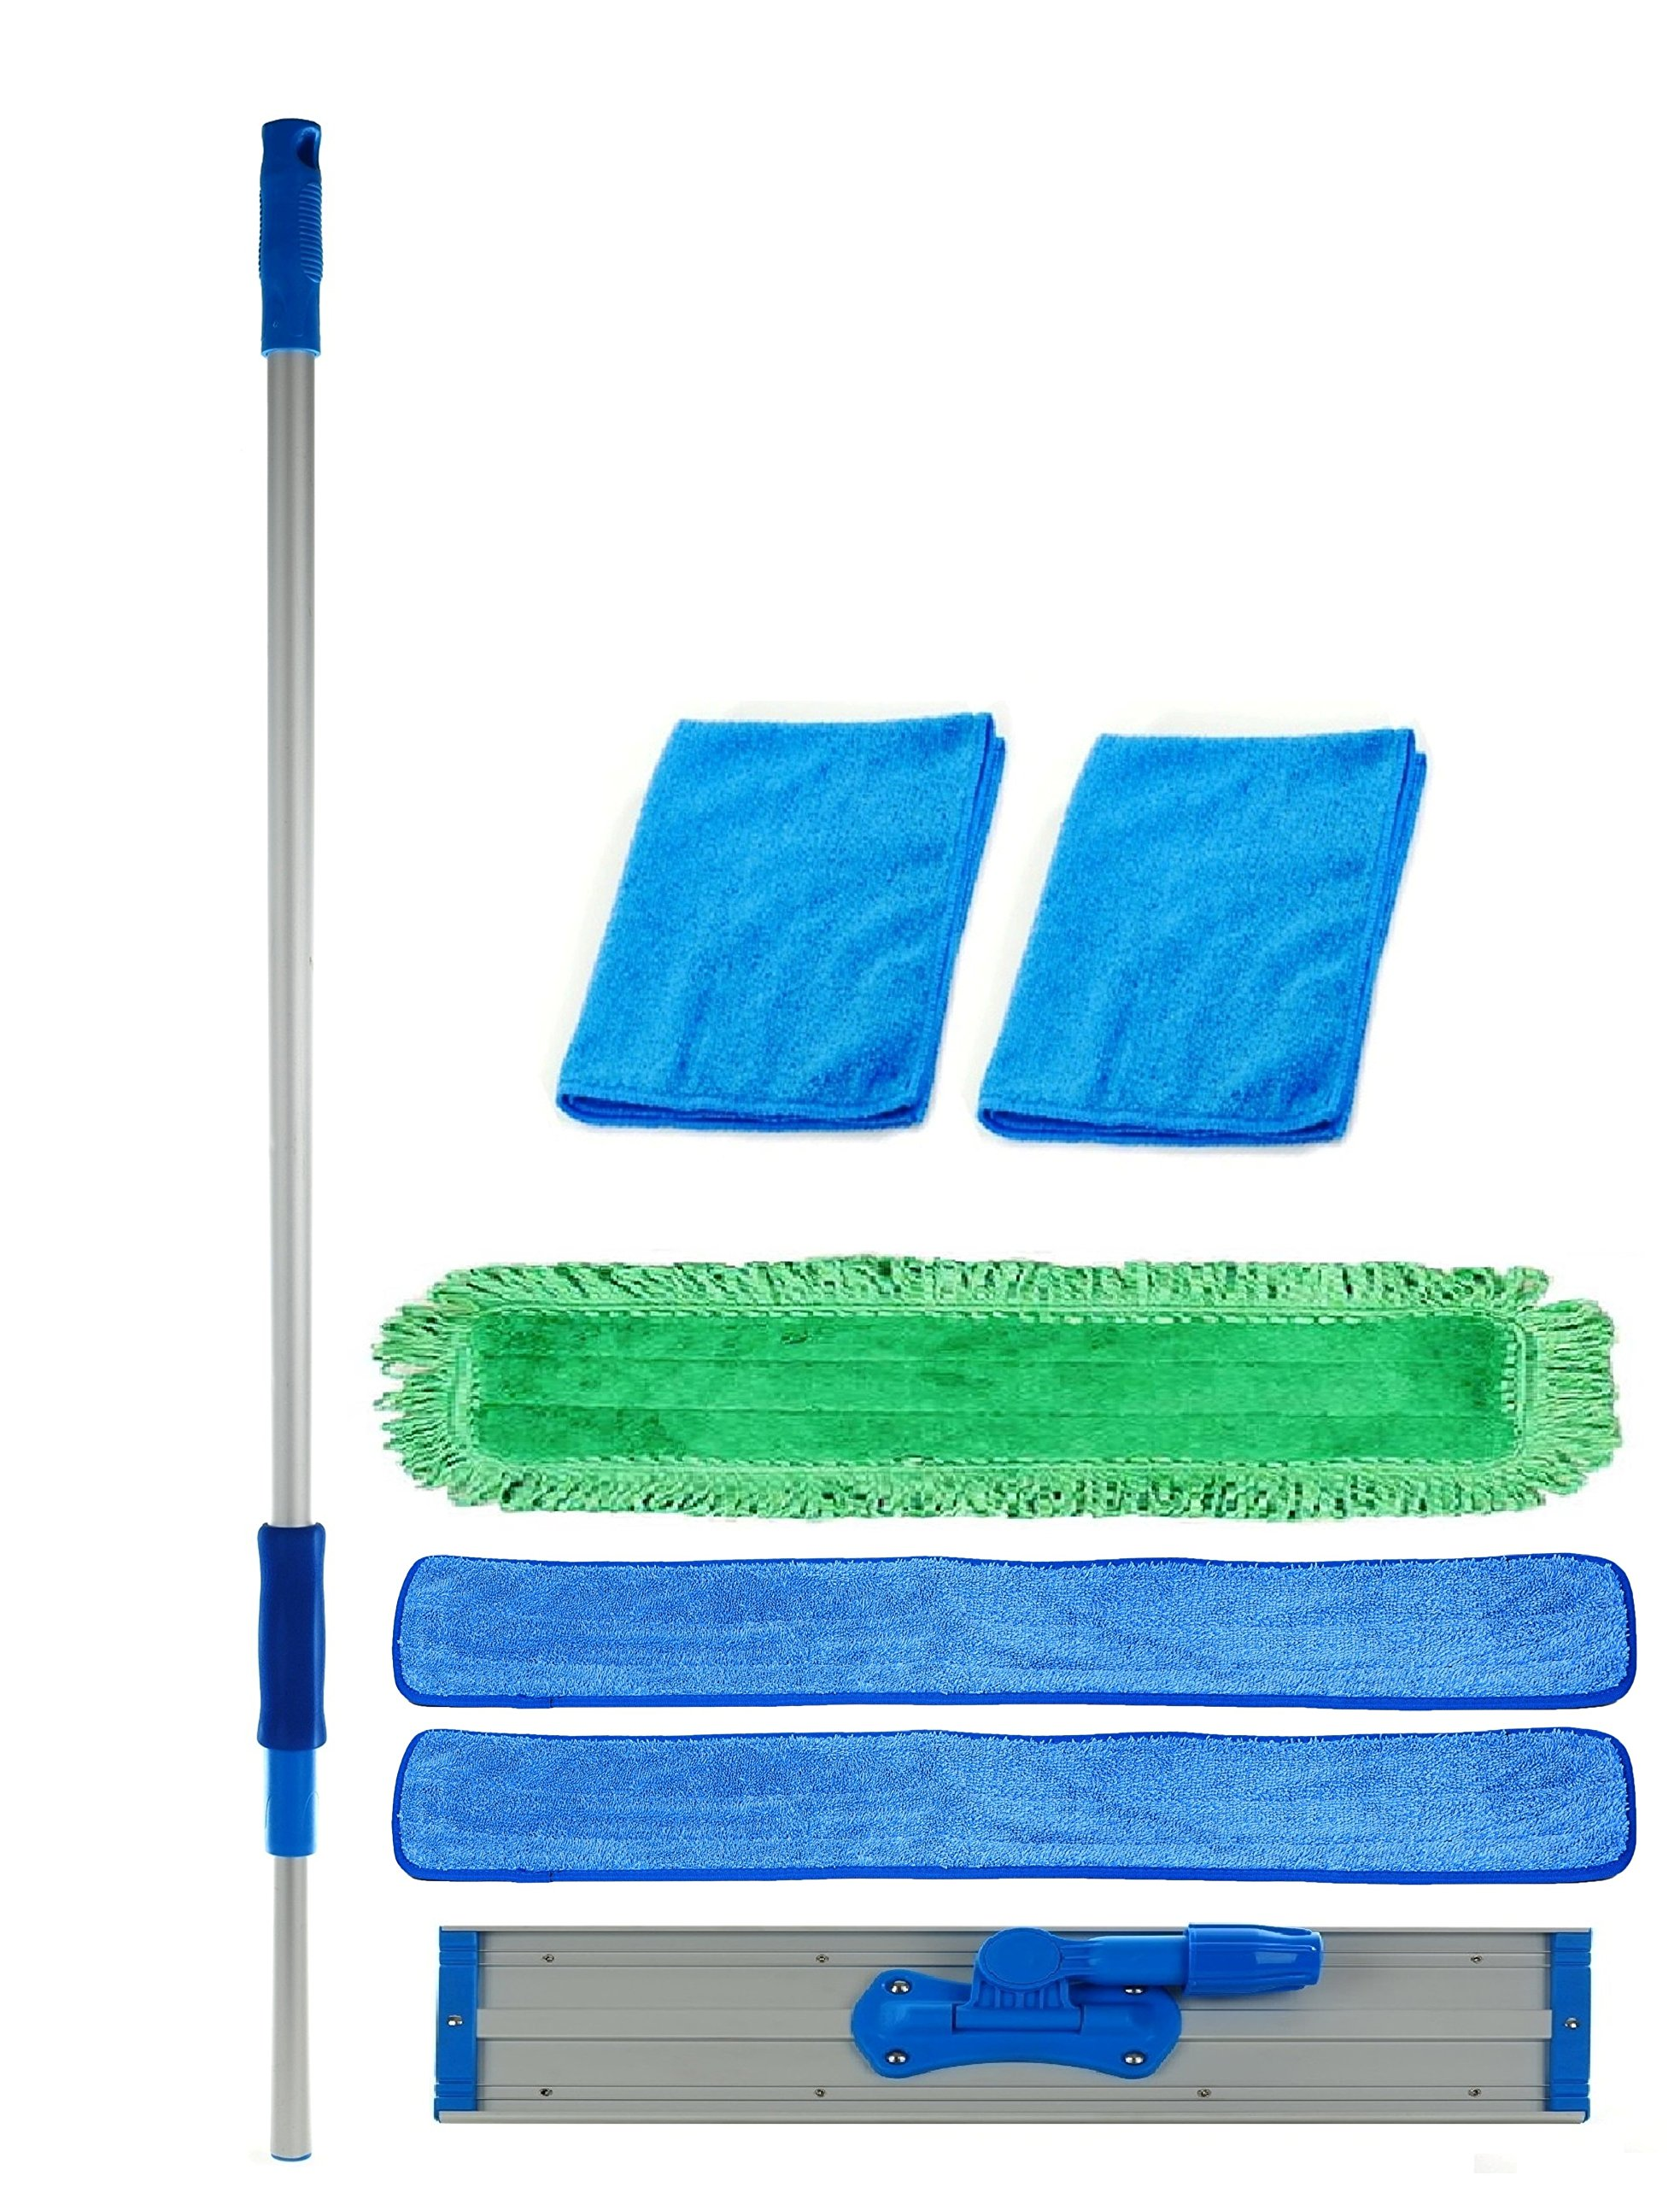 Real Clean 36 inch Commercial Microfiber Mop Kit by Real Clean